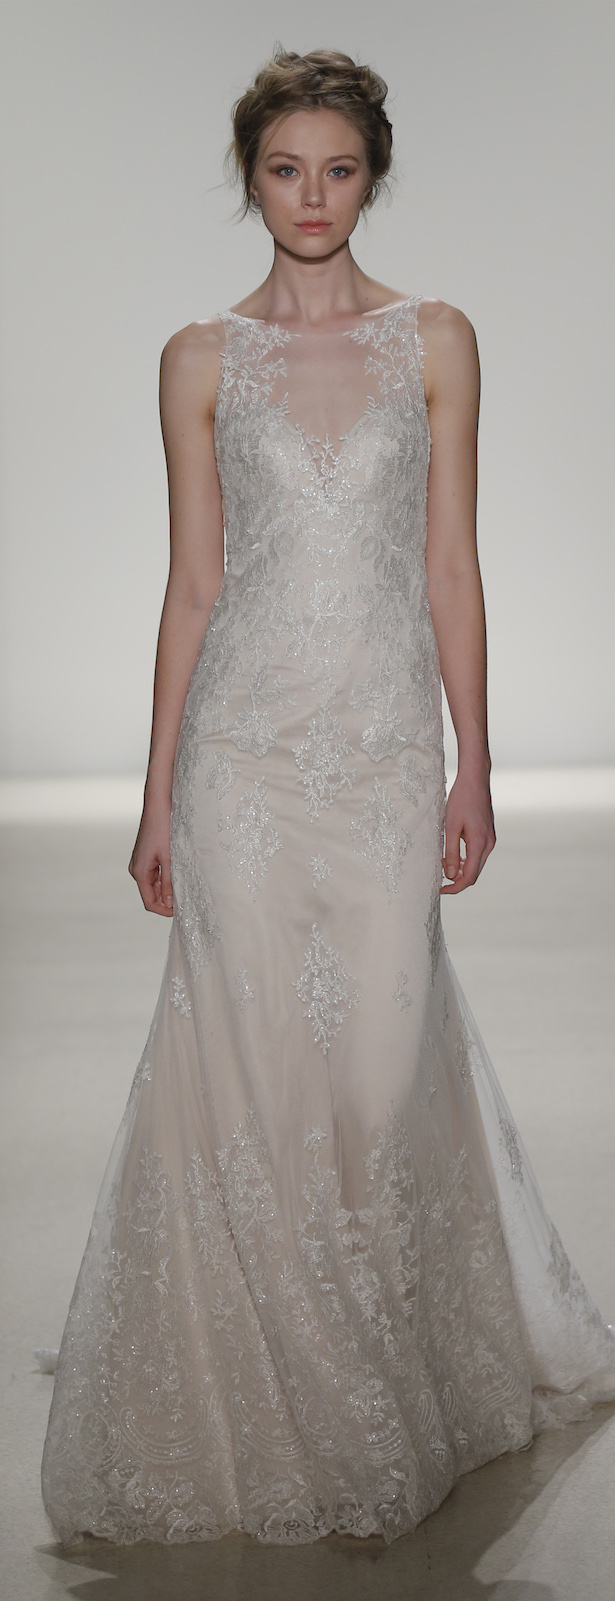 Wedding Dress by Kelly Faetanini Spring 2018 -FRANCISA